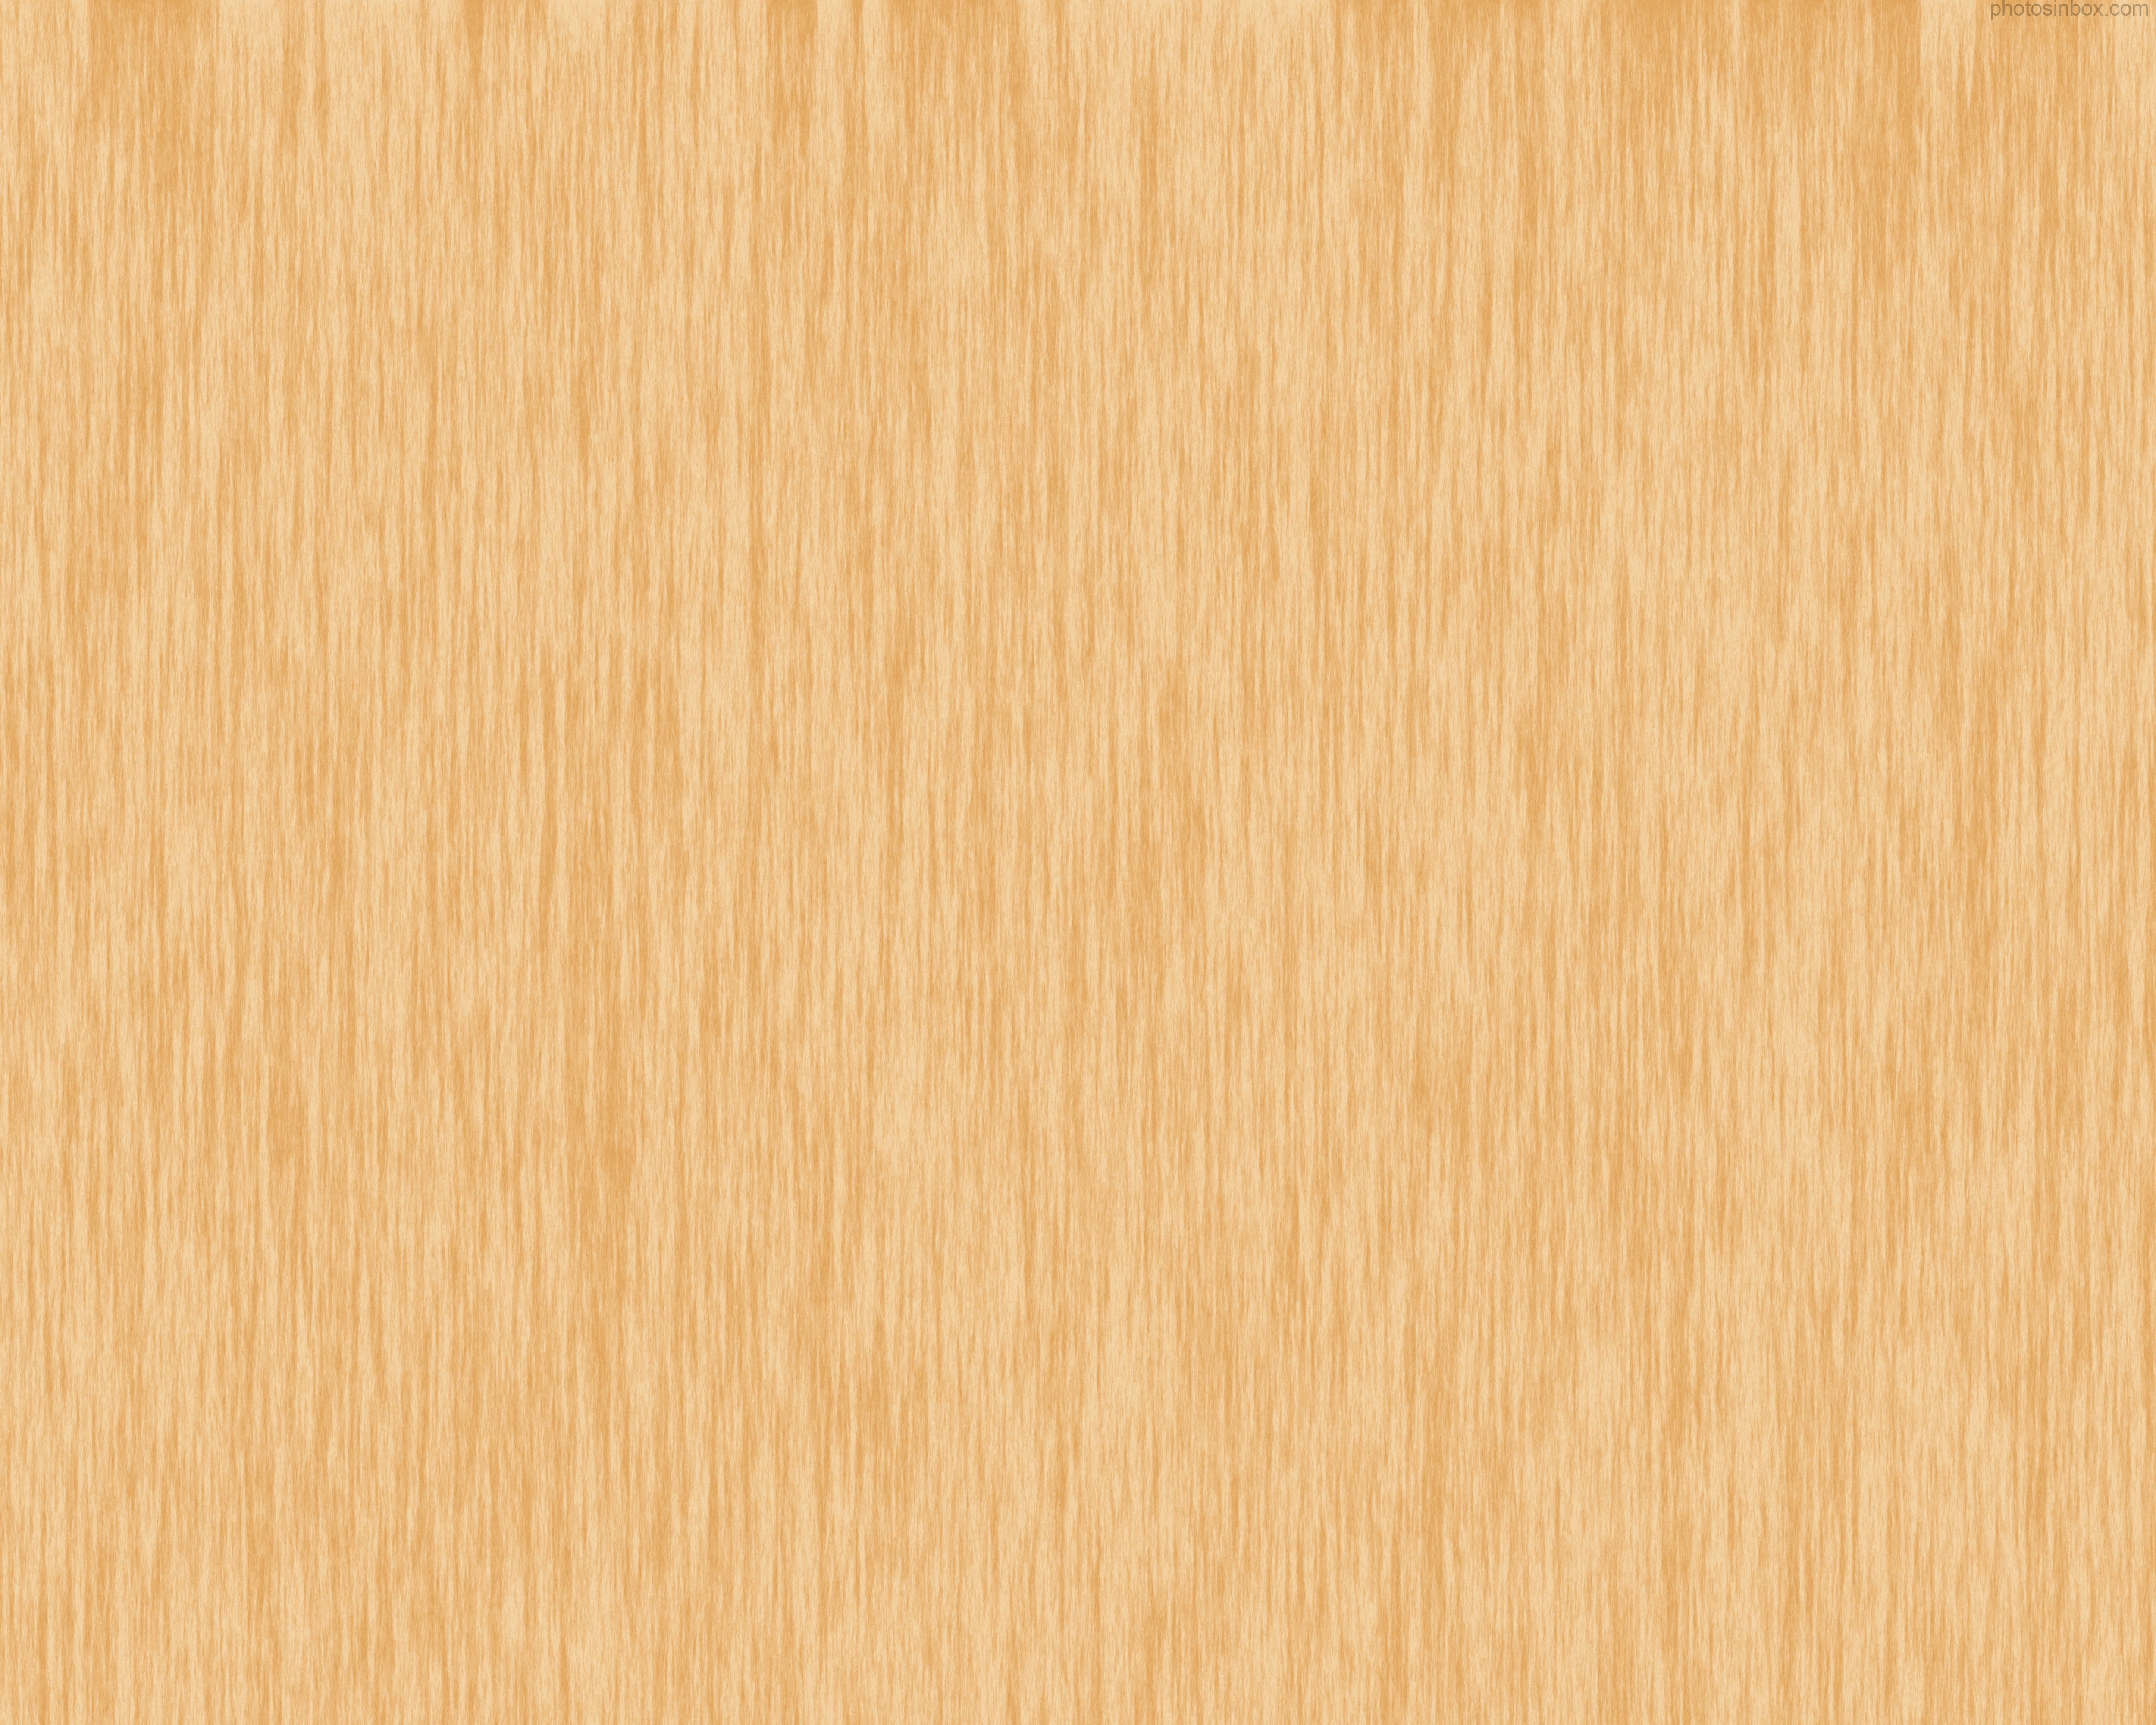 Light Hardwood Floor Texture: Pin By Taylor Baird On Interstellar